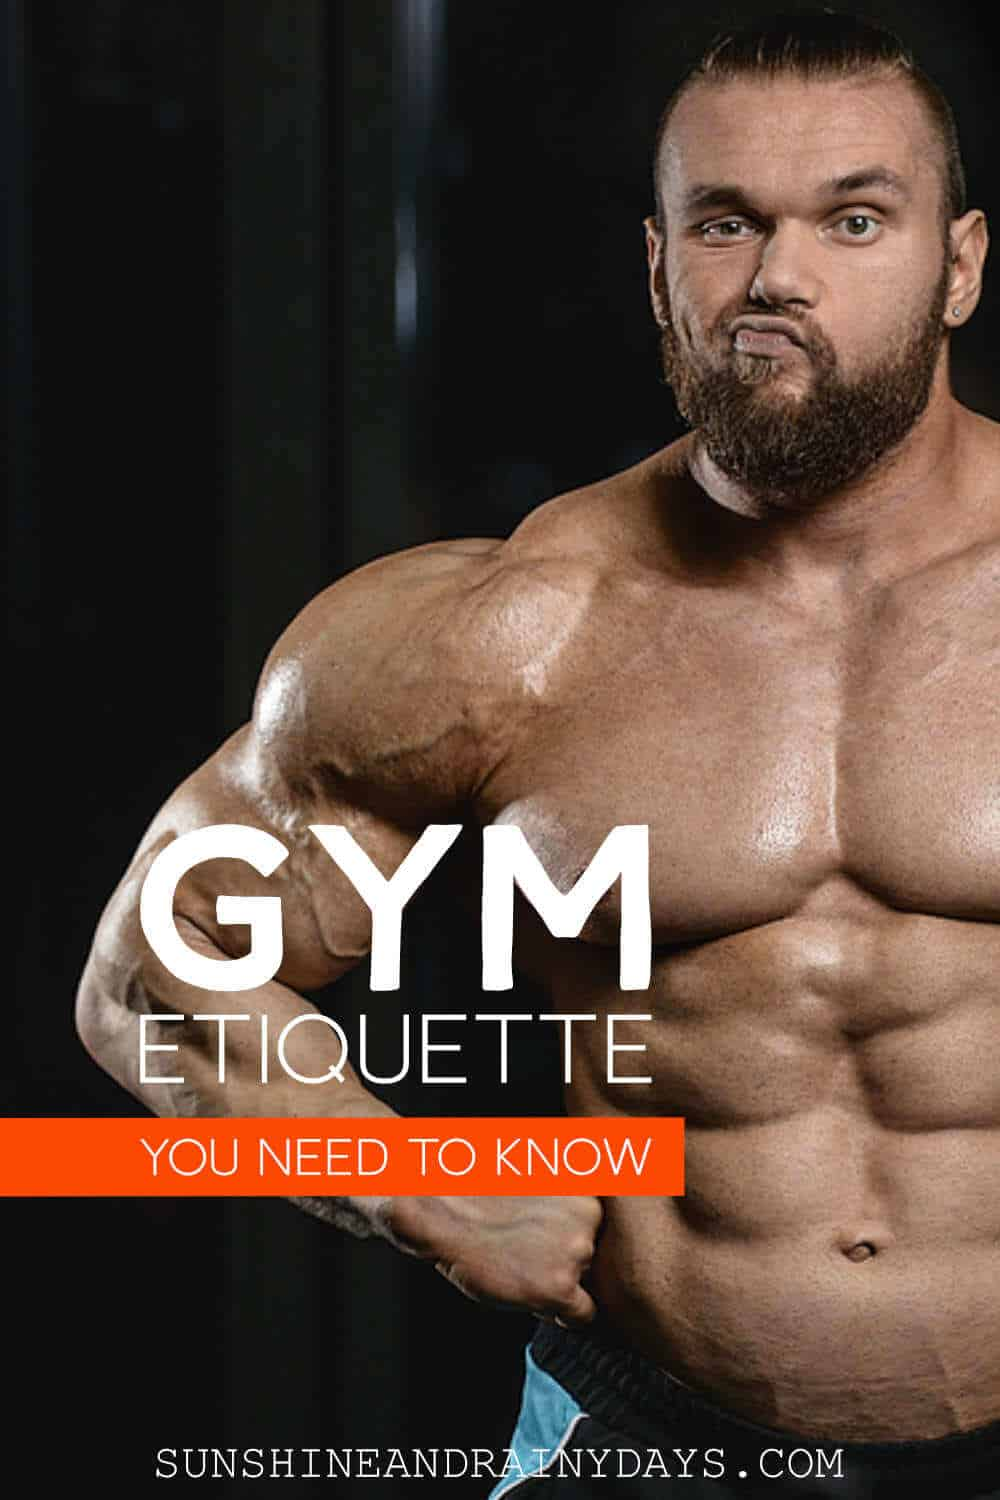 Gym Etiquette You Need To Know